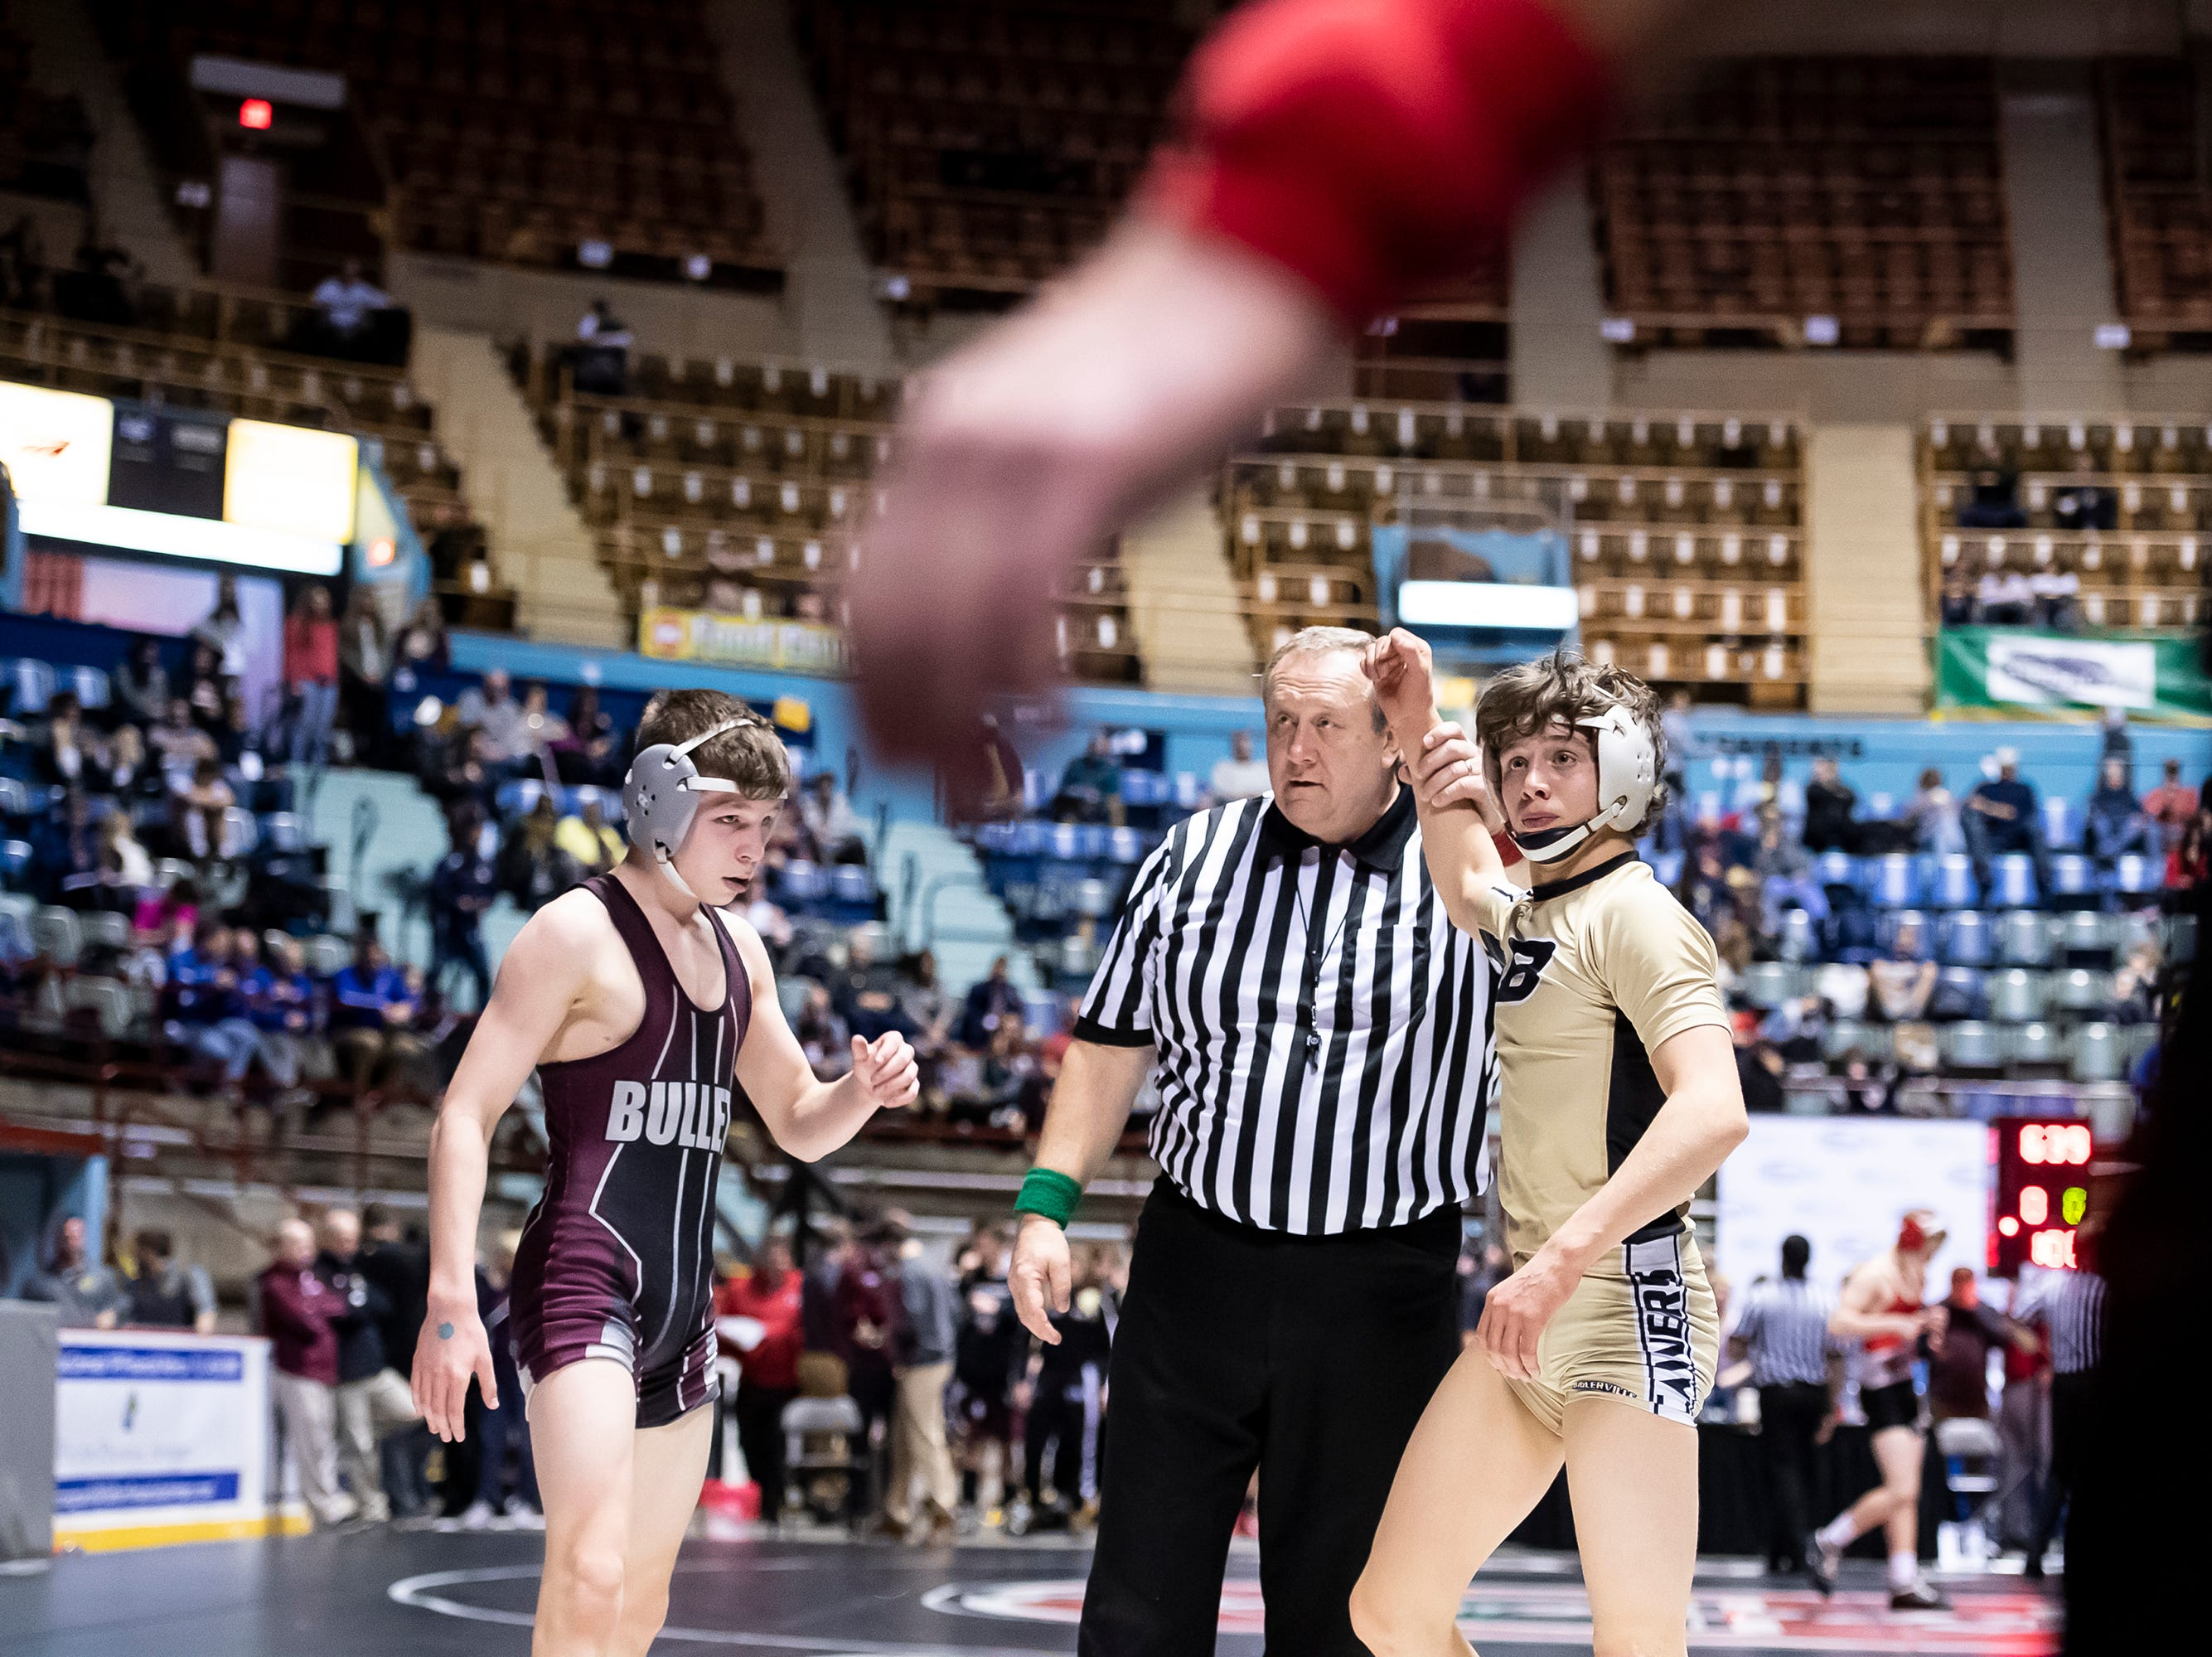 Biglerville's Levi Haines has his hand raised after defeating Brandywine Height's Noah Frack in a 106-pound championship bout at the District 3 wrestling championships at Hersheypark Arena Saturday, February 23, 2019. Haines won by major decision 11-0.